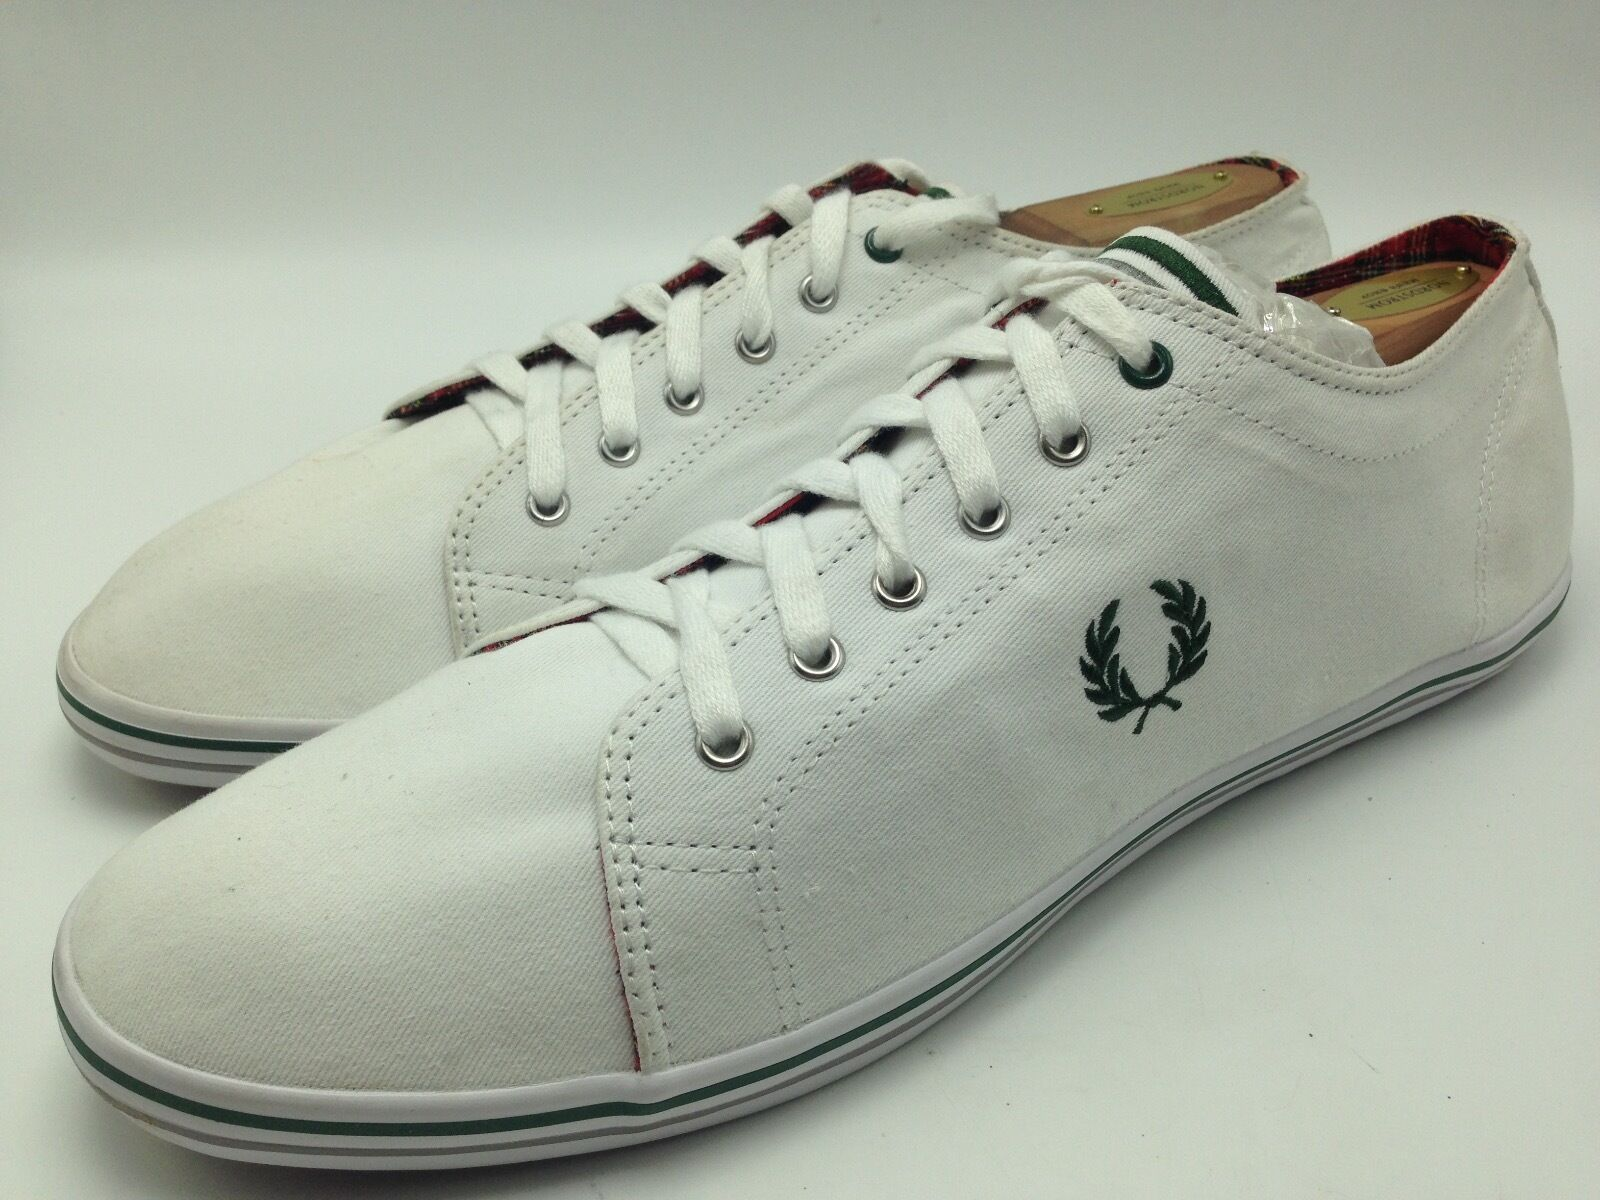 7A3 Fred Perry Twill Canvas Sneakers Casual Flat laced White Men shoes Size 13